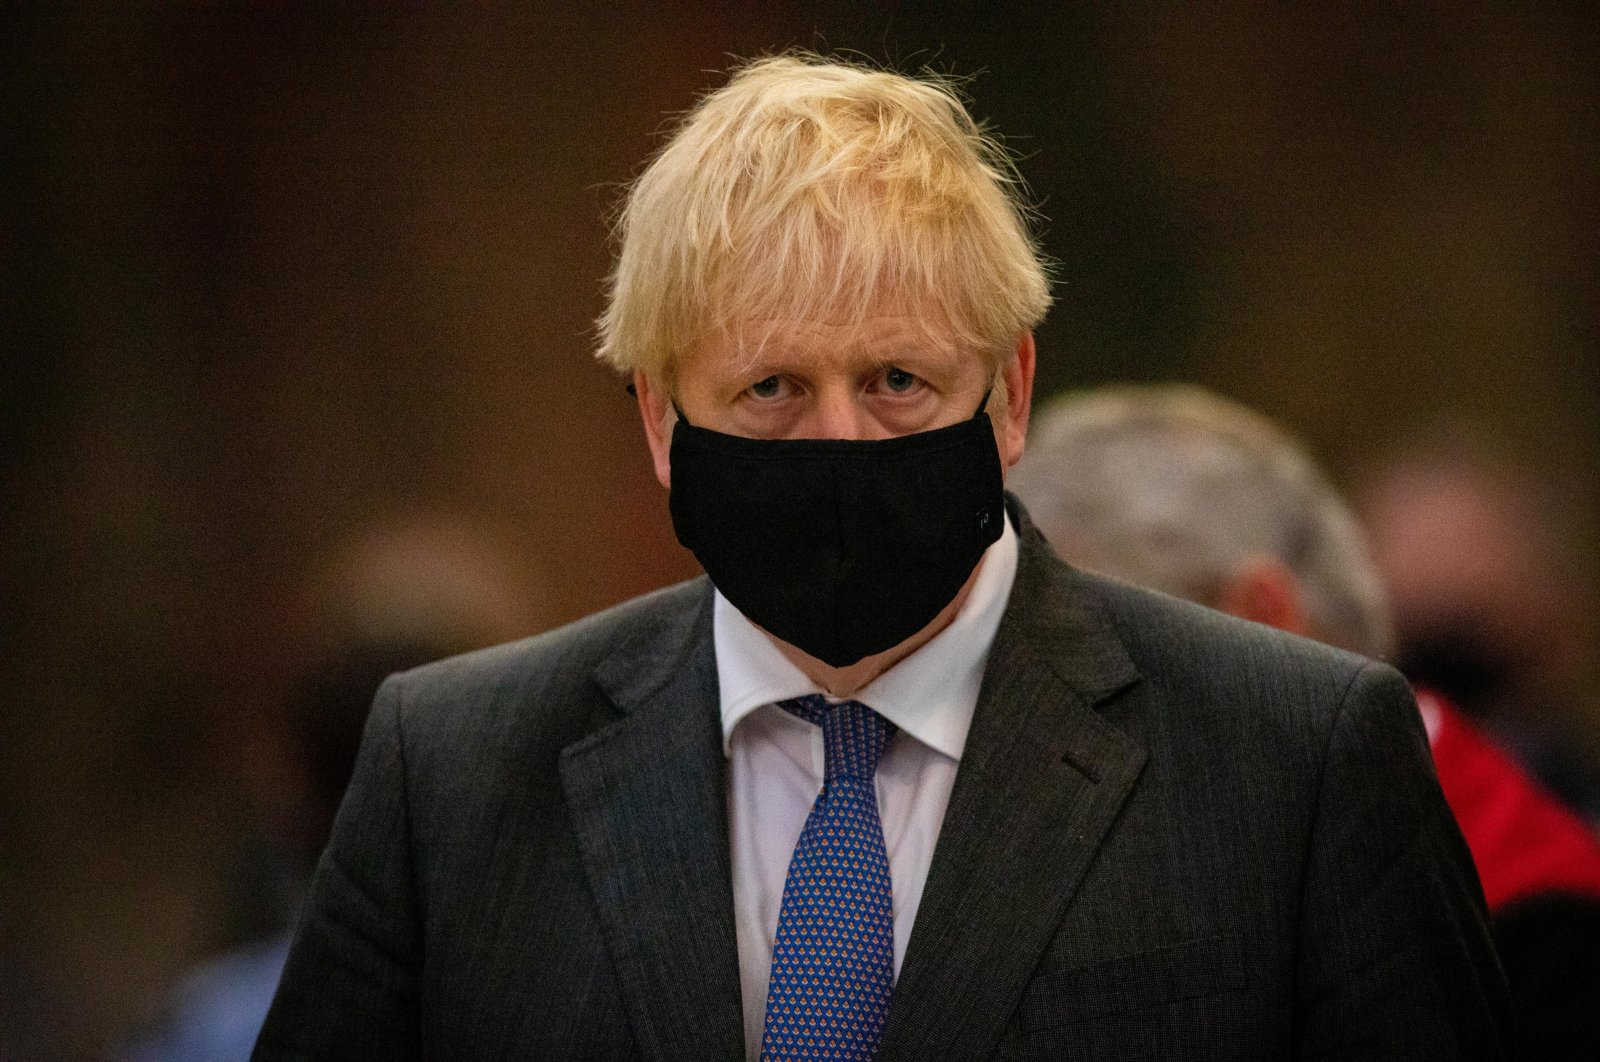 Britain's Prime Minister Boris Johnson attends a service to mark the 80th anniversary of the Battle of Britain at Westminster Abbey in London, Britain, Sept. 20, 2020. (Reuters Photo)